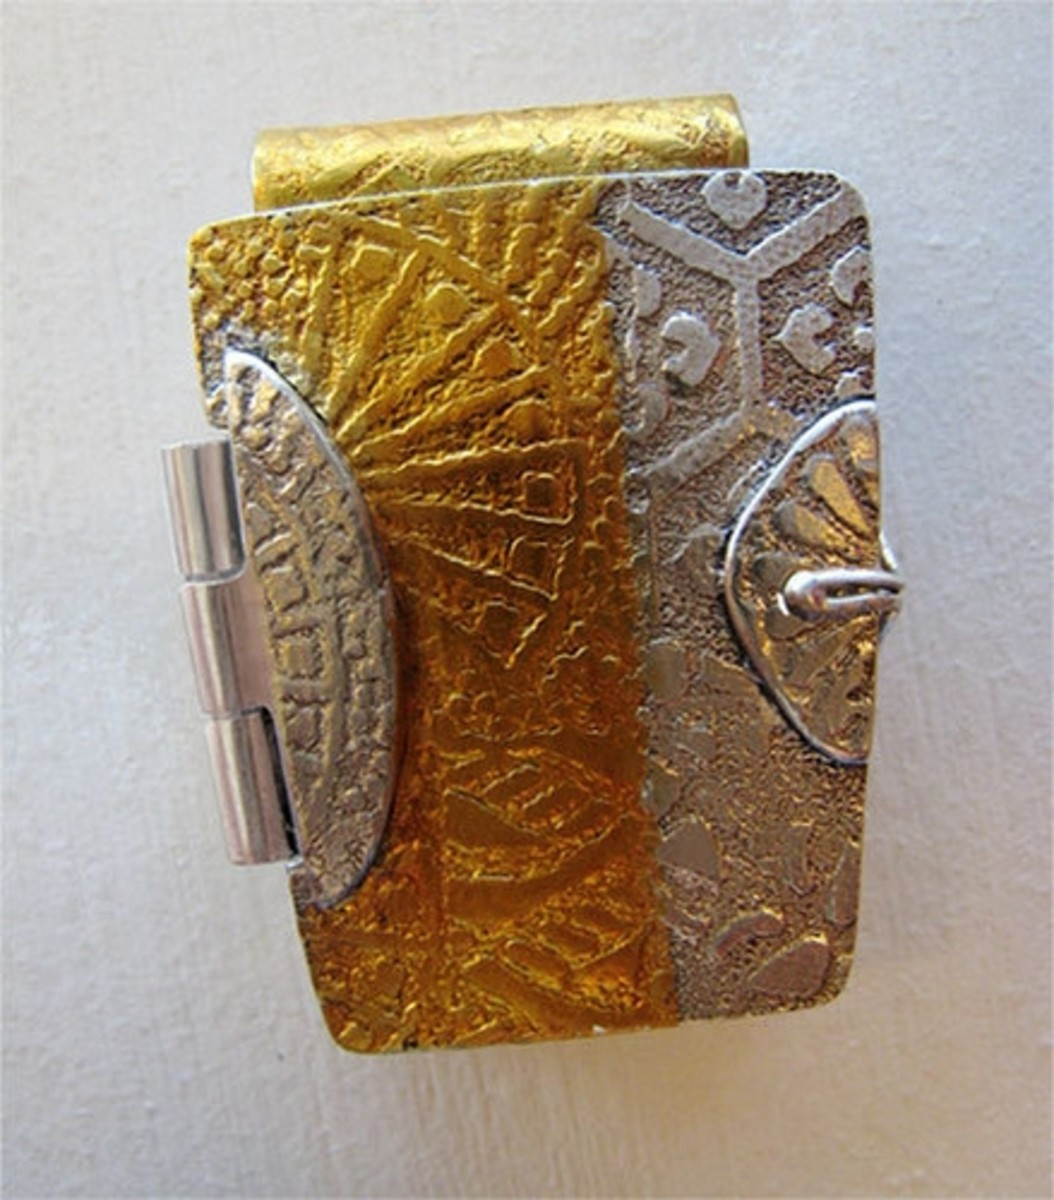 Attaching hinges is a perfect application for using homemade metal clay oil paste, as I did on this hinged fine silver and gold locket made from PMC3 silver clay and 24K gold keum-boo foil.